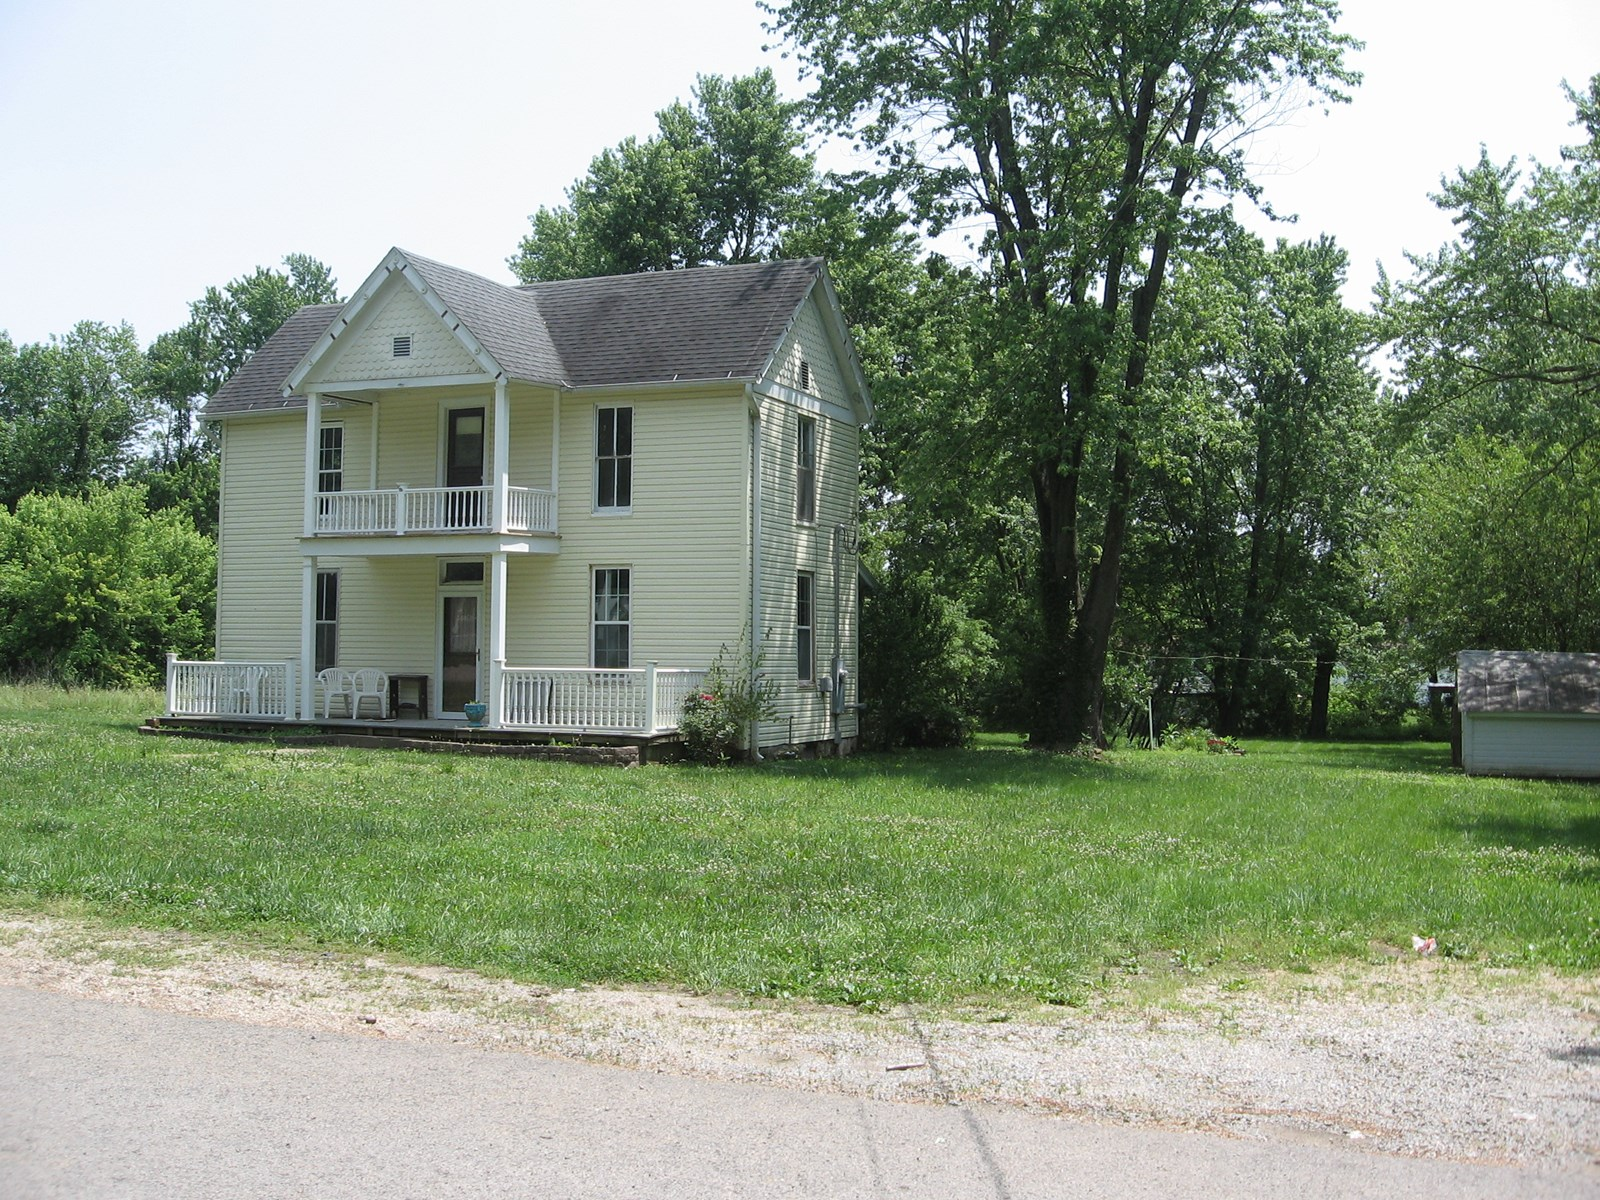 HISTORIC HOME ON 2.8 ACRES M/L IN FREDERICKTOWN, MO.